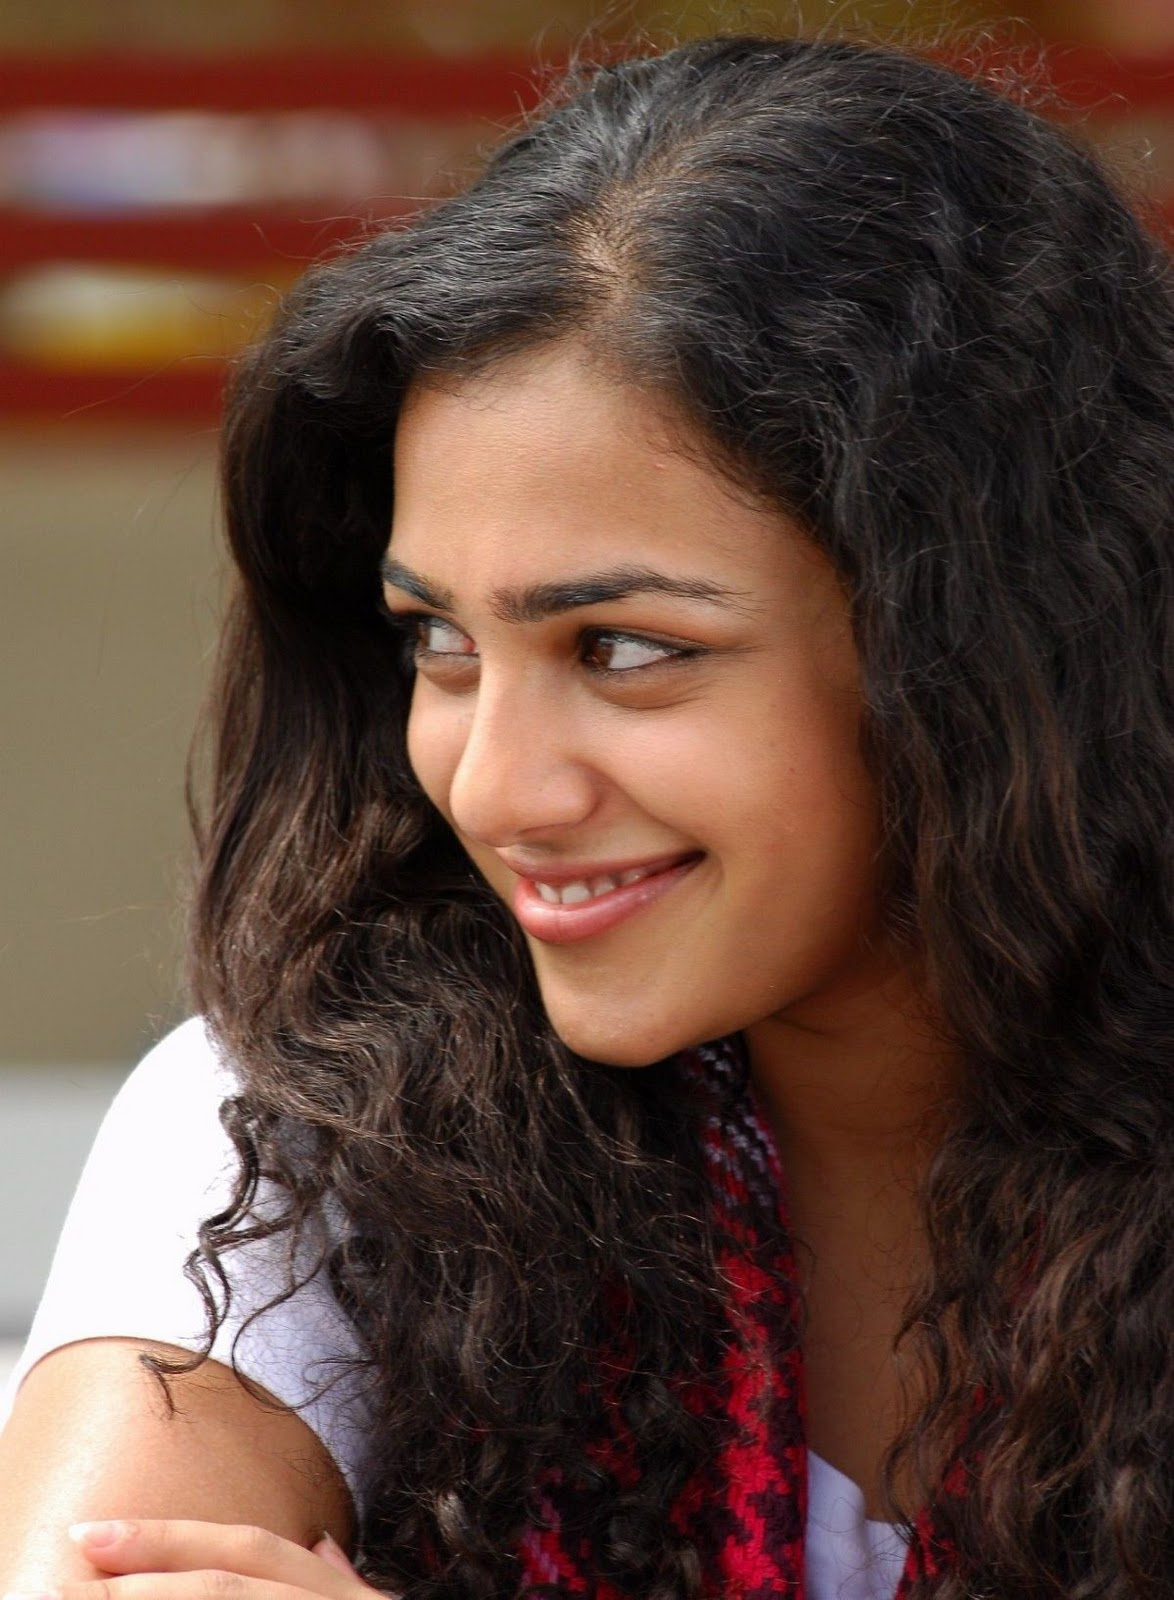 Nithya Menon Latest Movie Stills 01 Aussie Surf Lifesavers In Trunks. by Marc on December 15, 2010